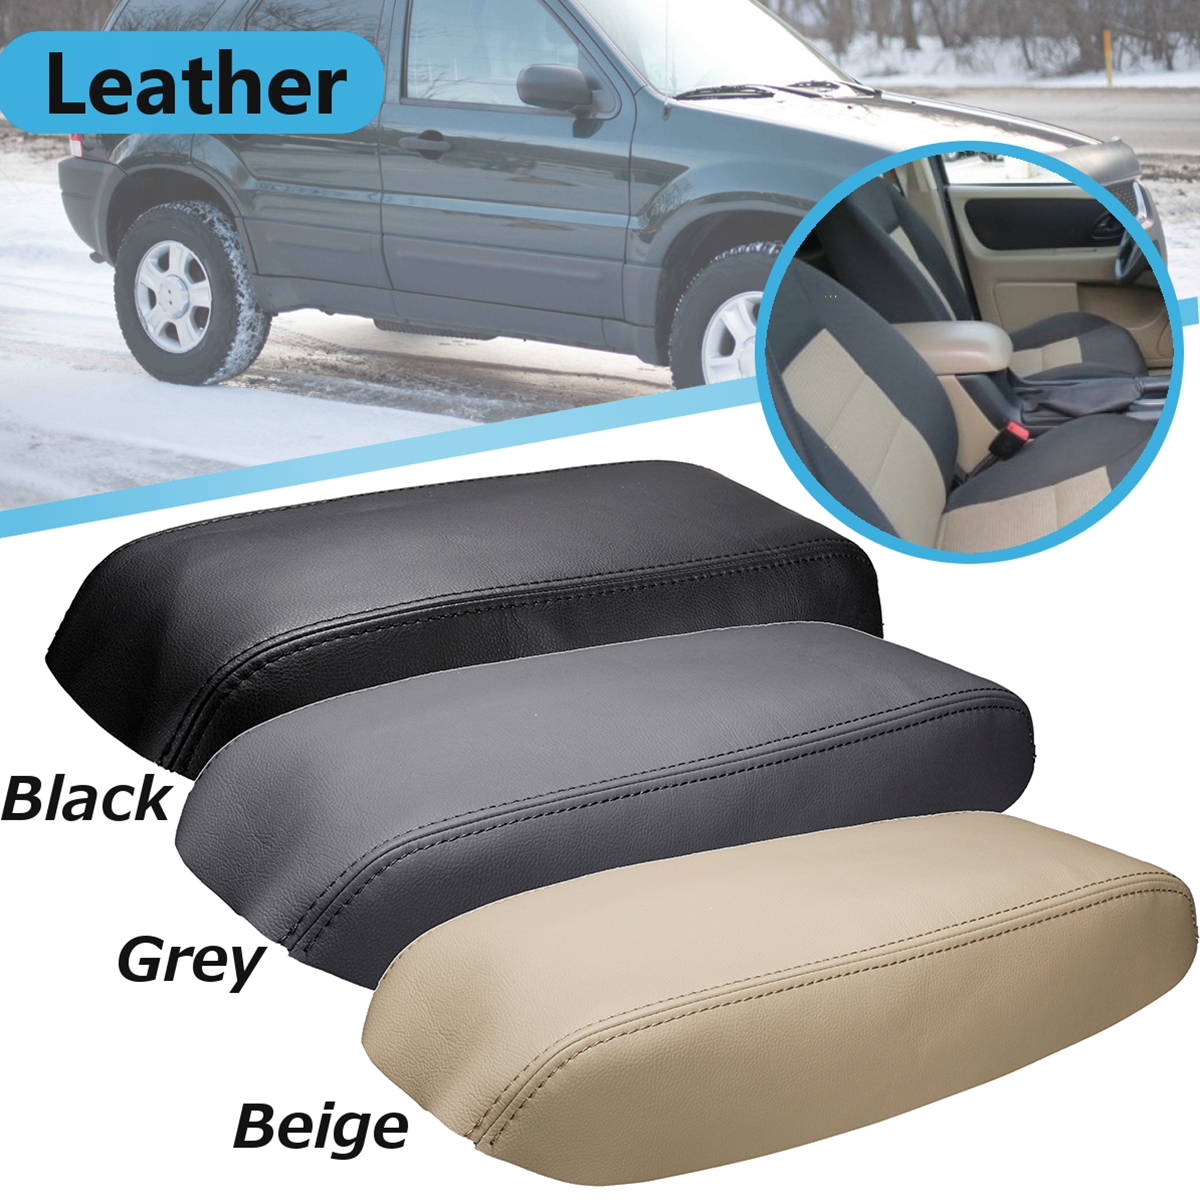 Synthetic Leather Center Console Armrest Cover BEIGE Fits 05-07 Ford Escape